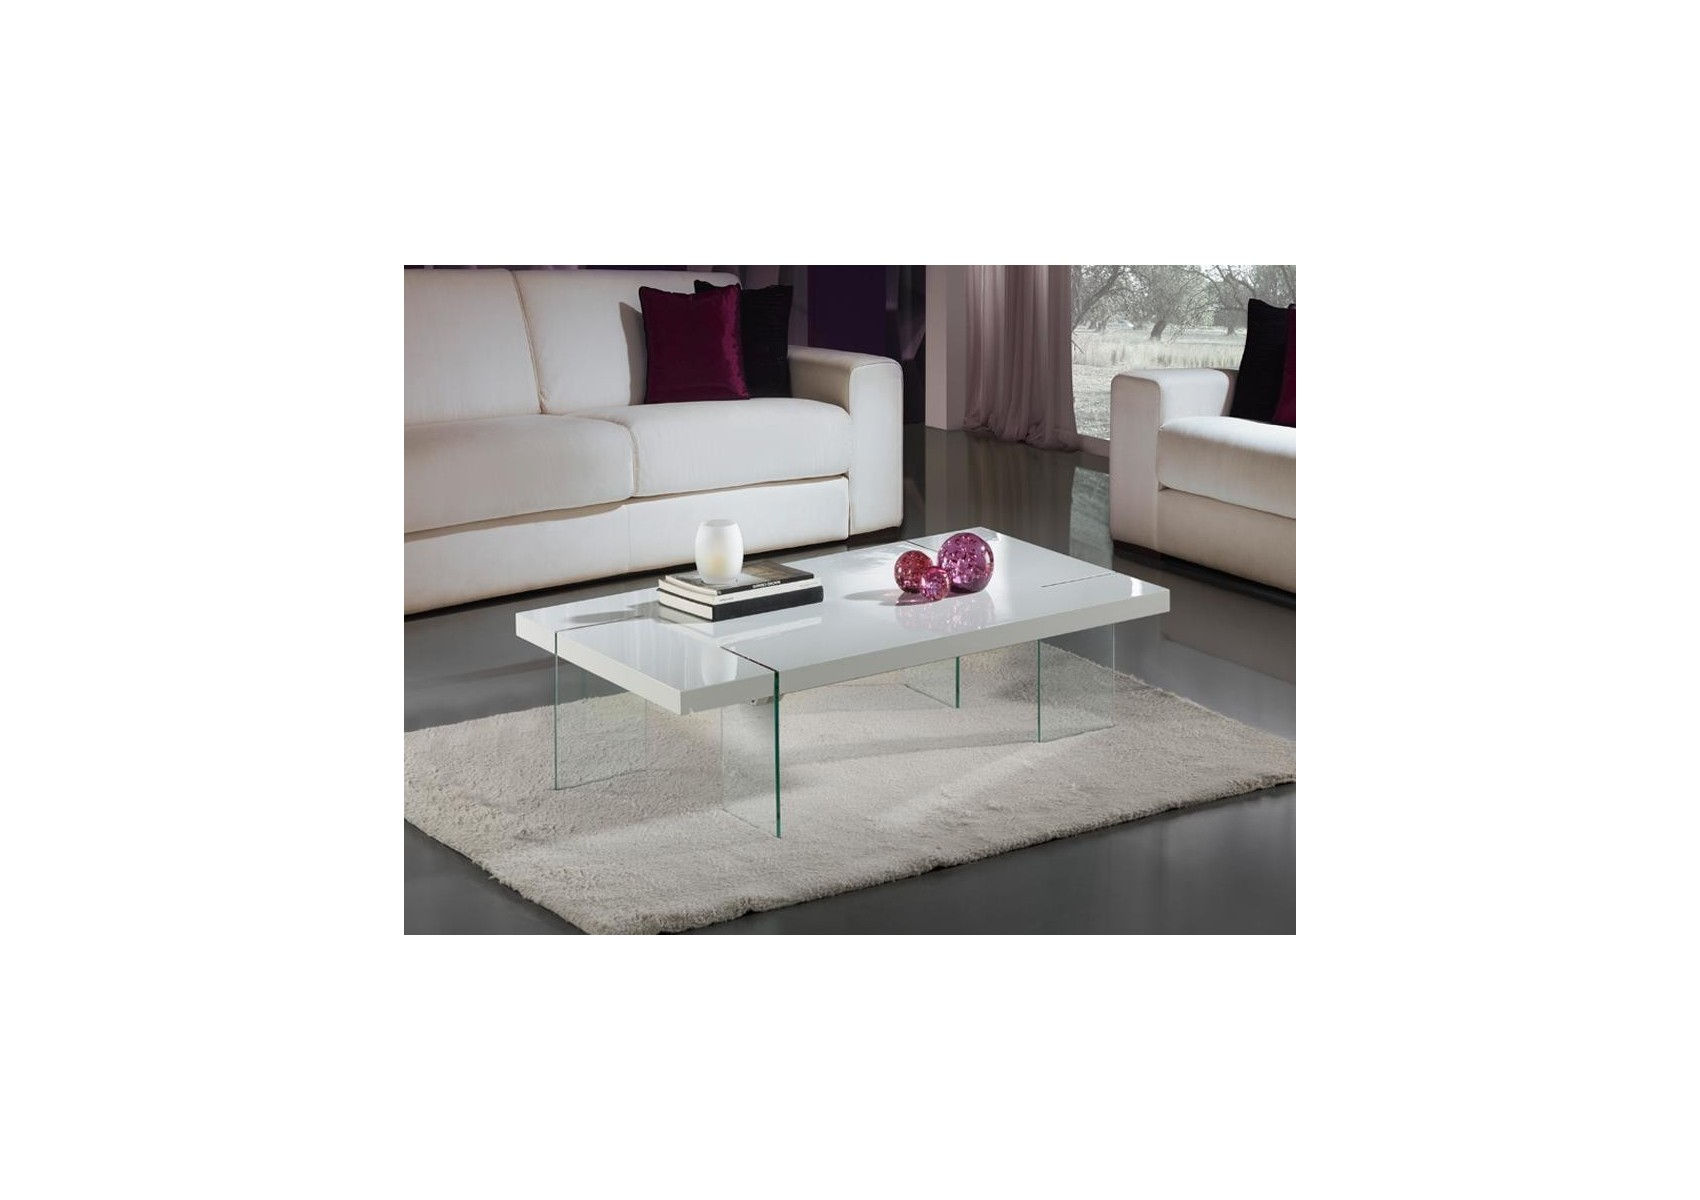 Table basse verre trempe blanc - Table basse rectangulaire blanc laque ...